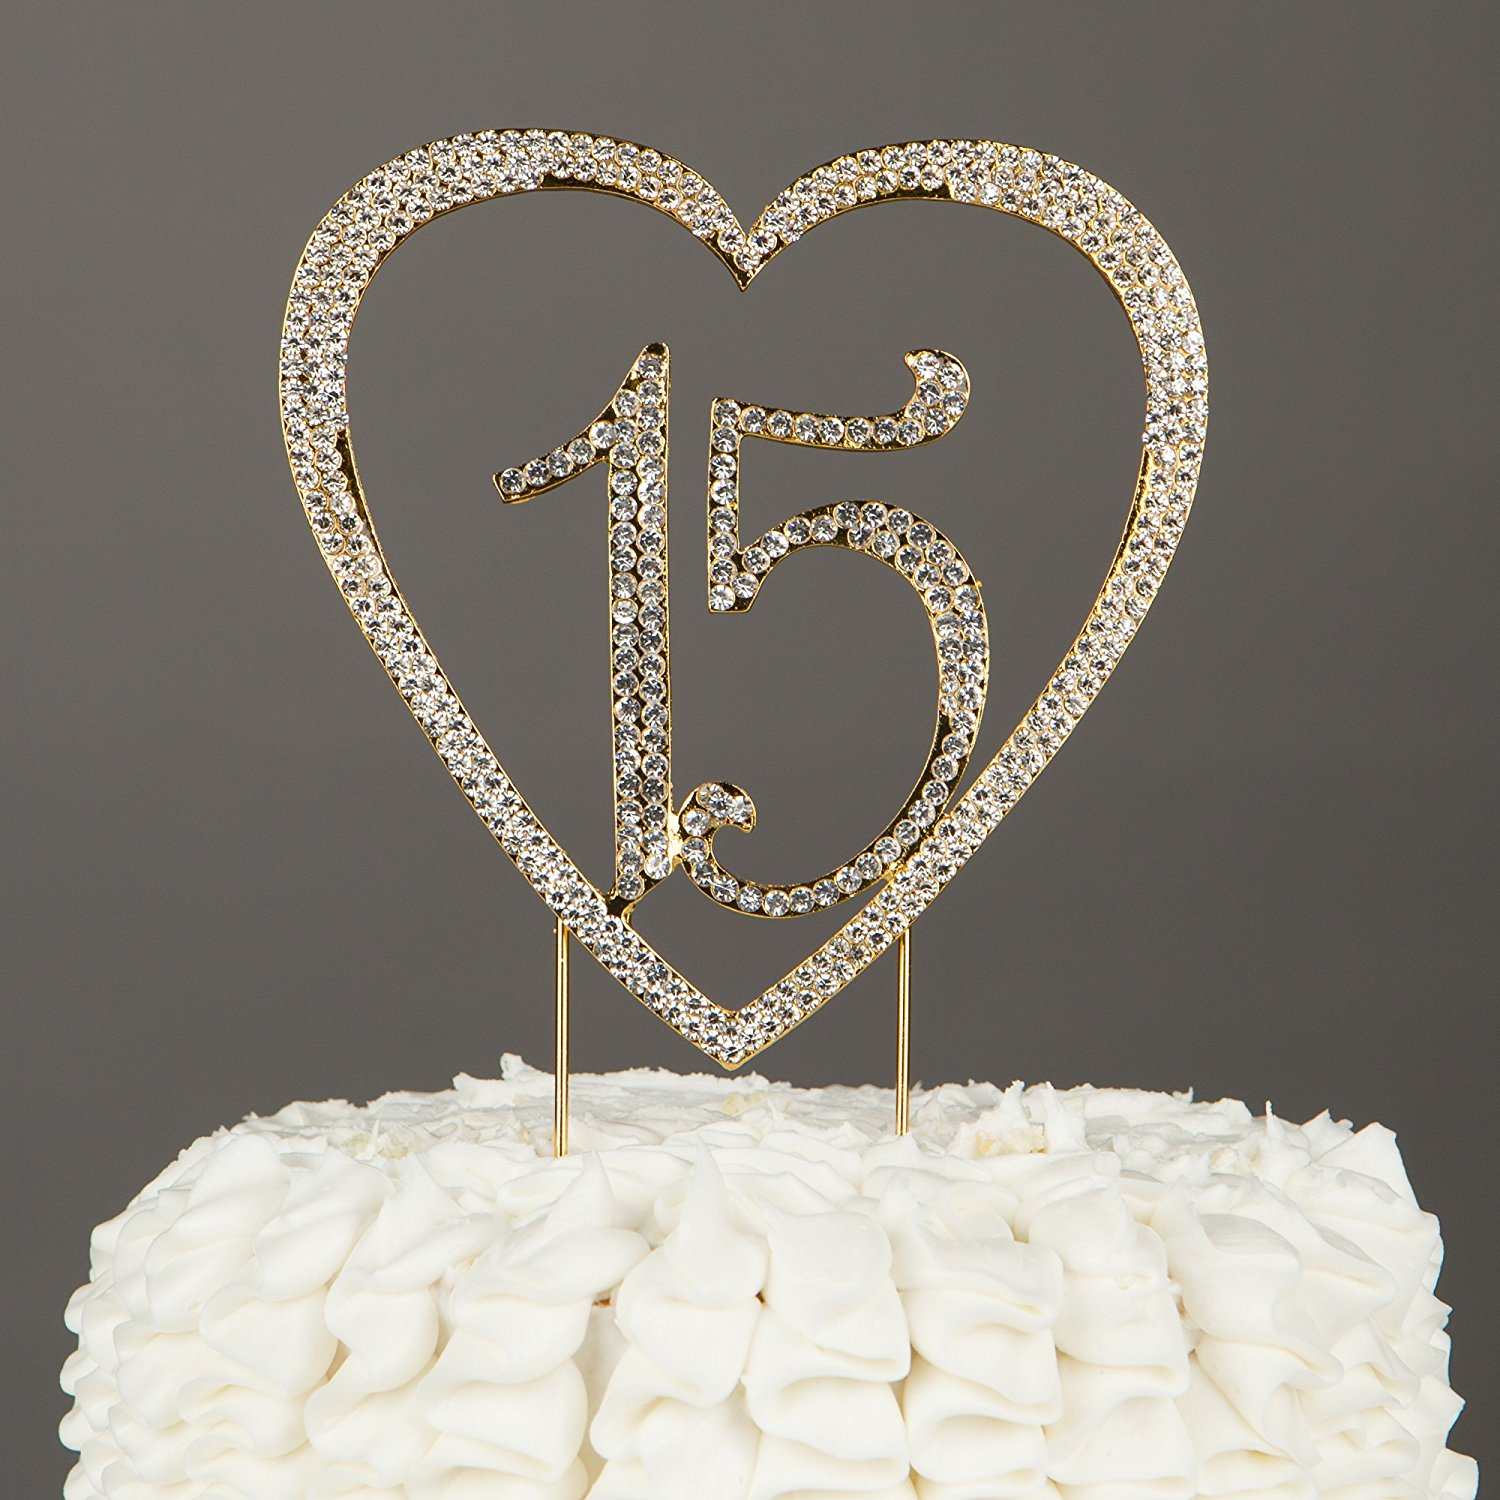 15 Heart Cake Topper, Gold 15th Birthday Party Quinceañera Rhinestone Metal Decoration (Gold)